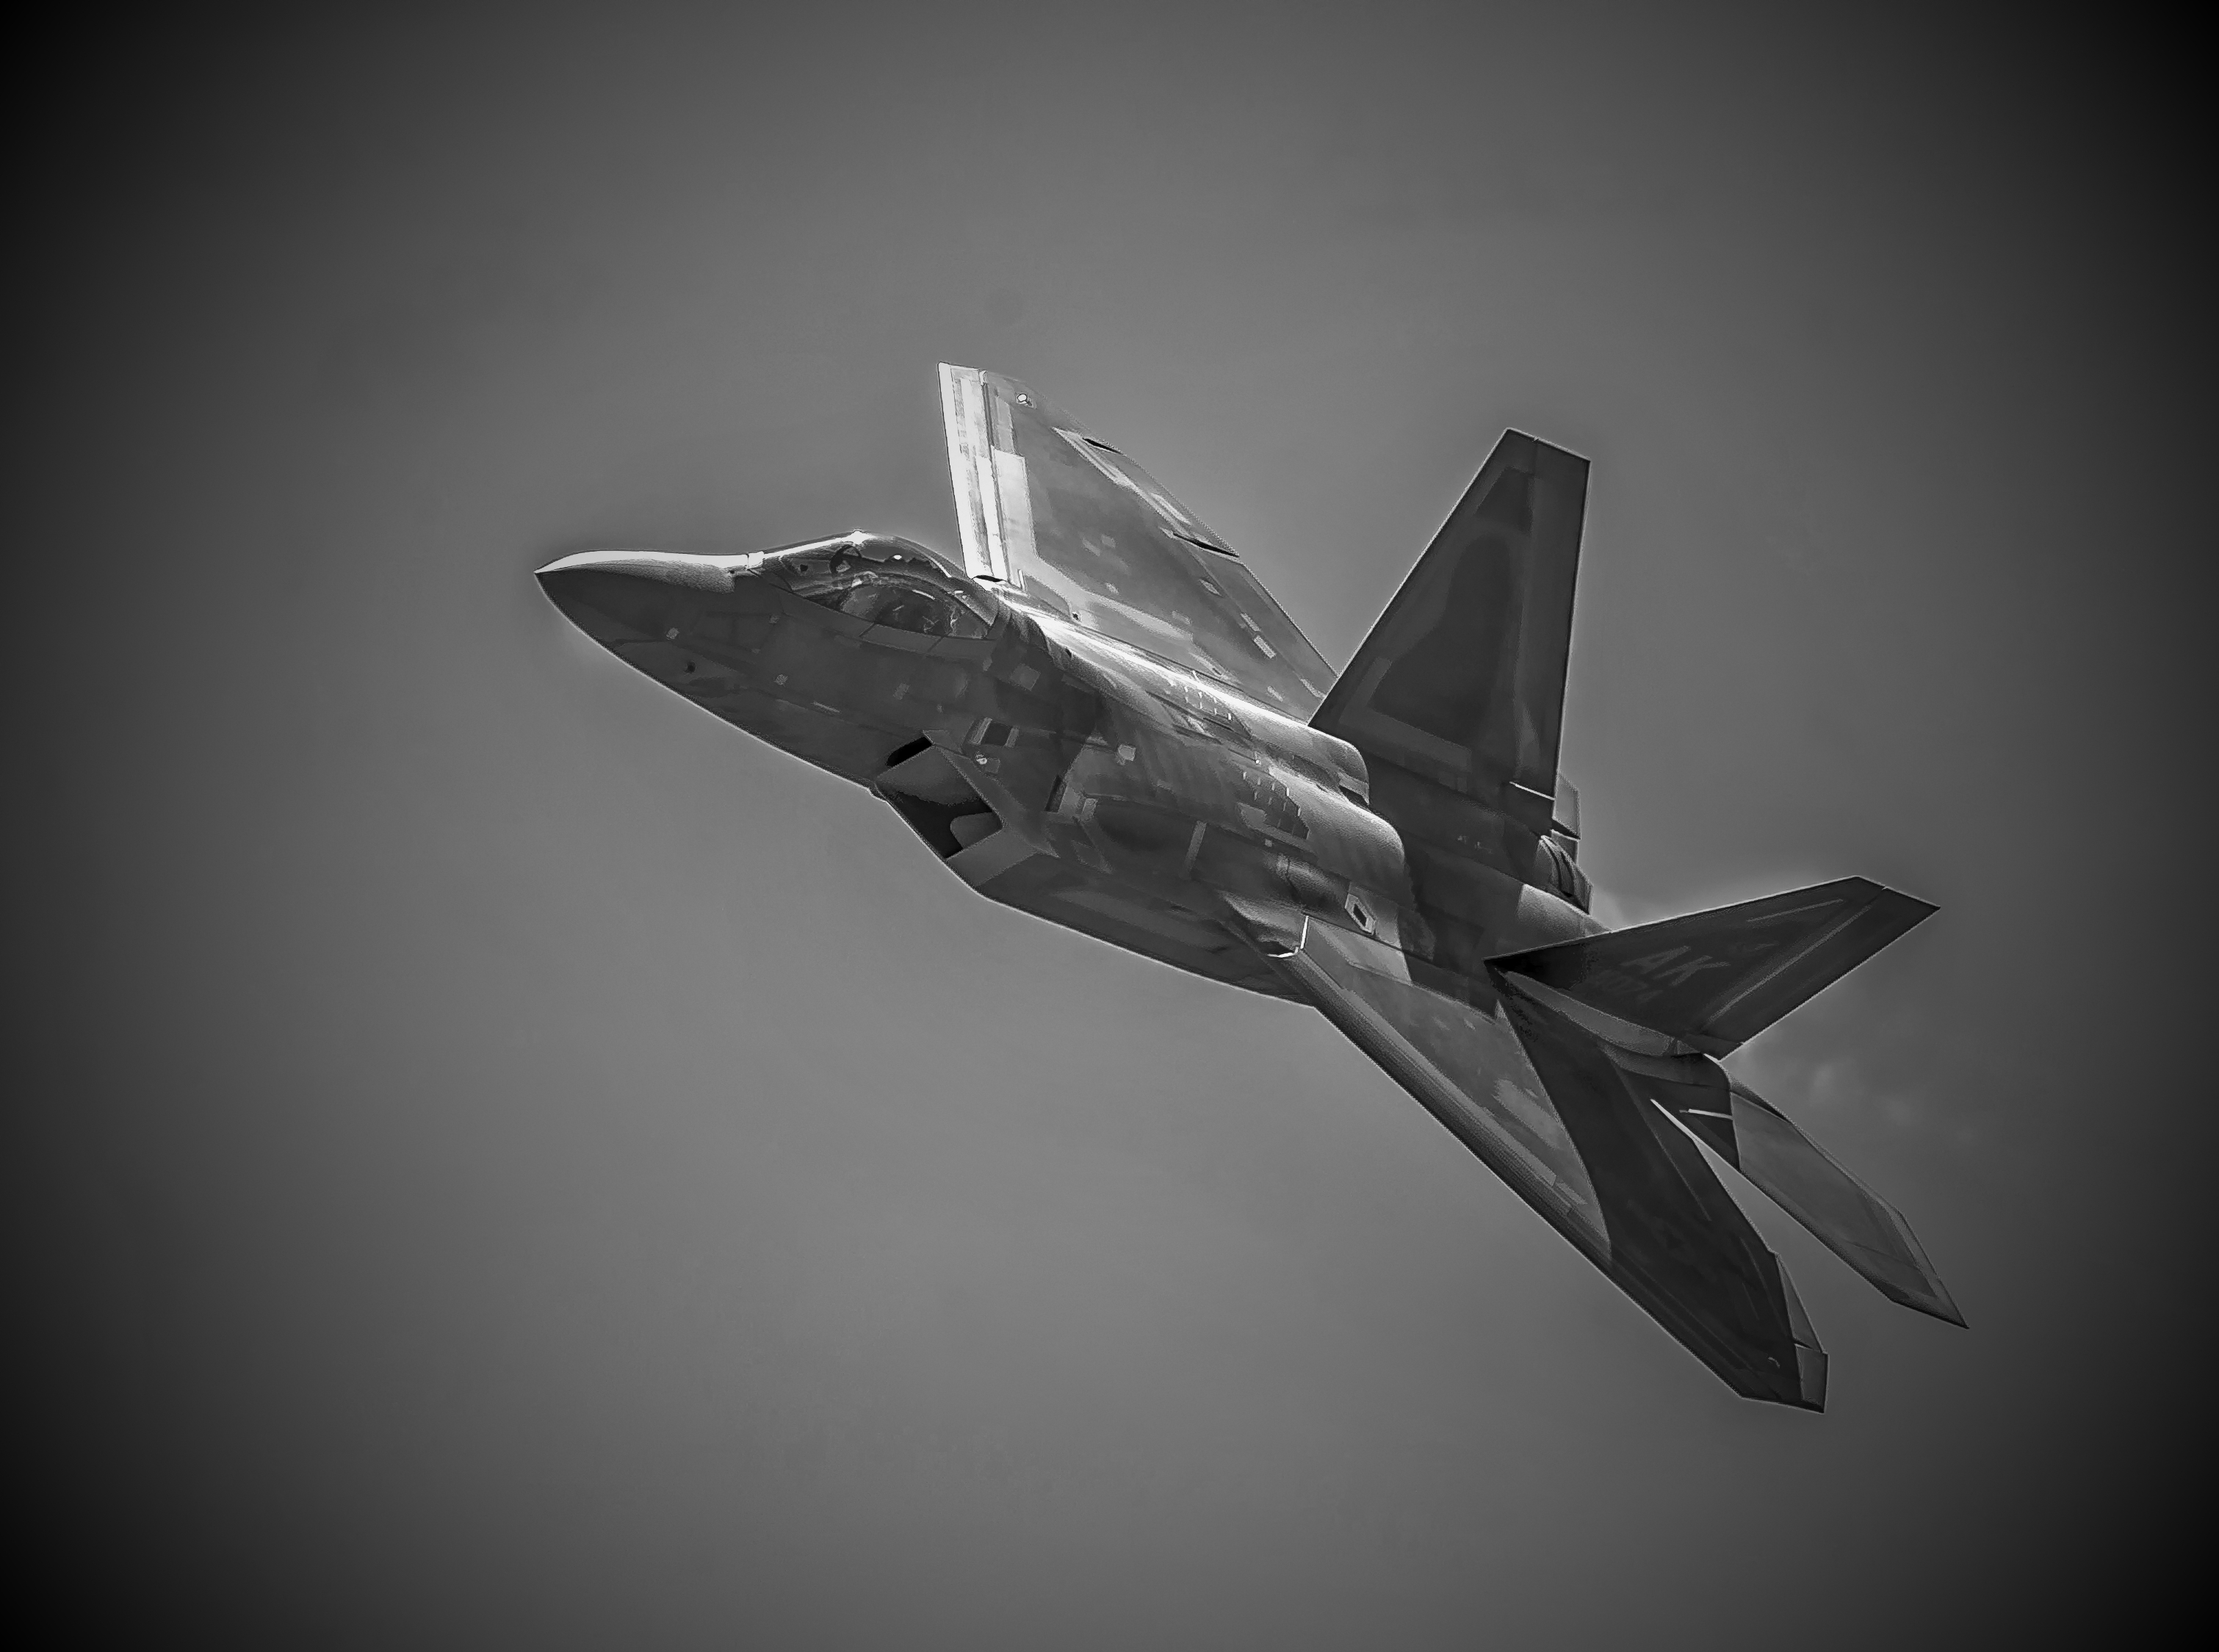 Lockheed martin f-22a raptor photo